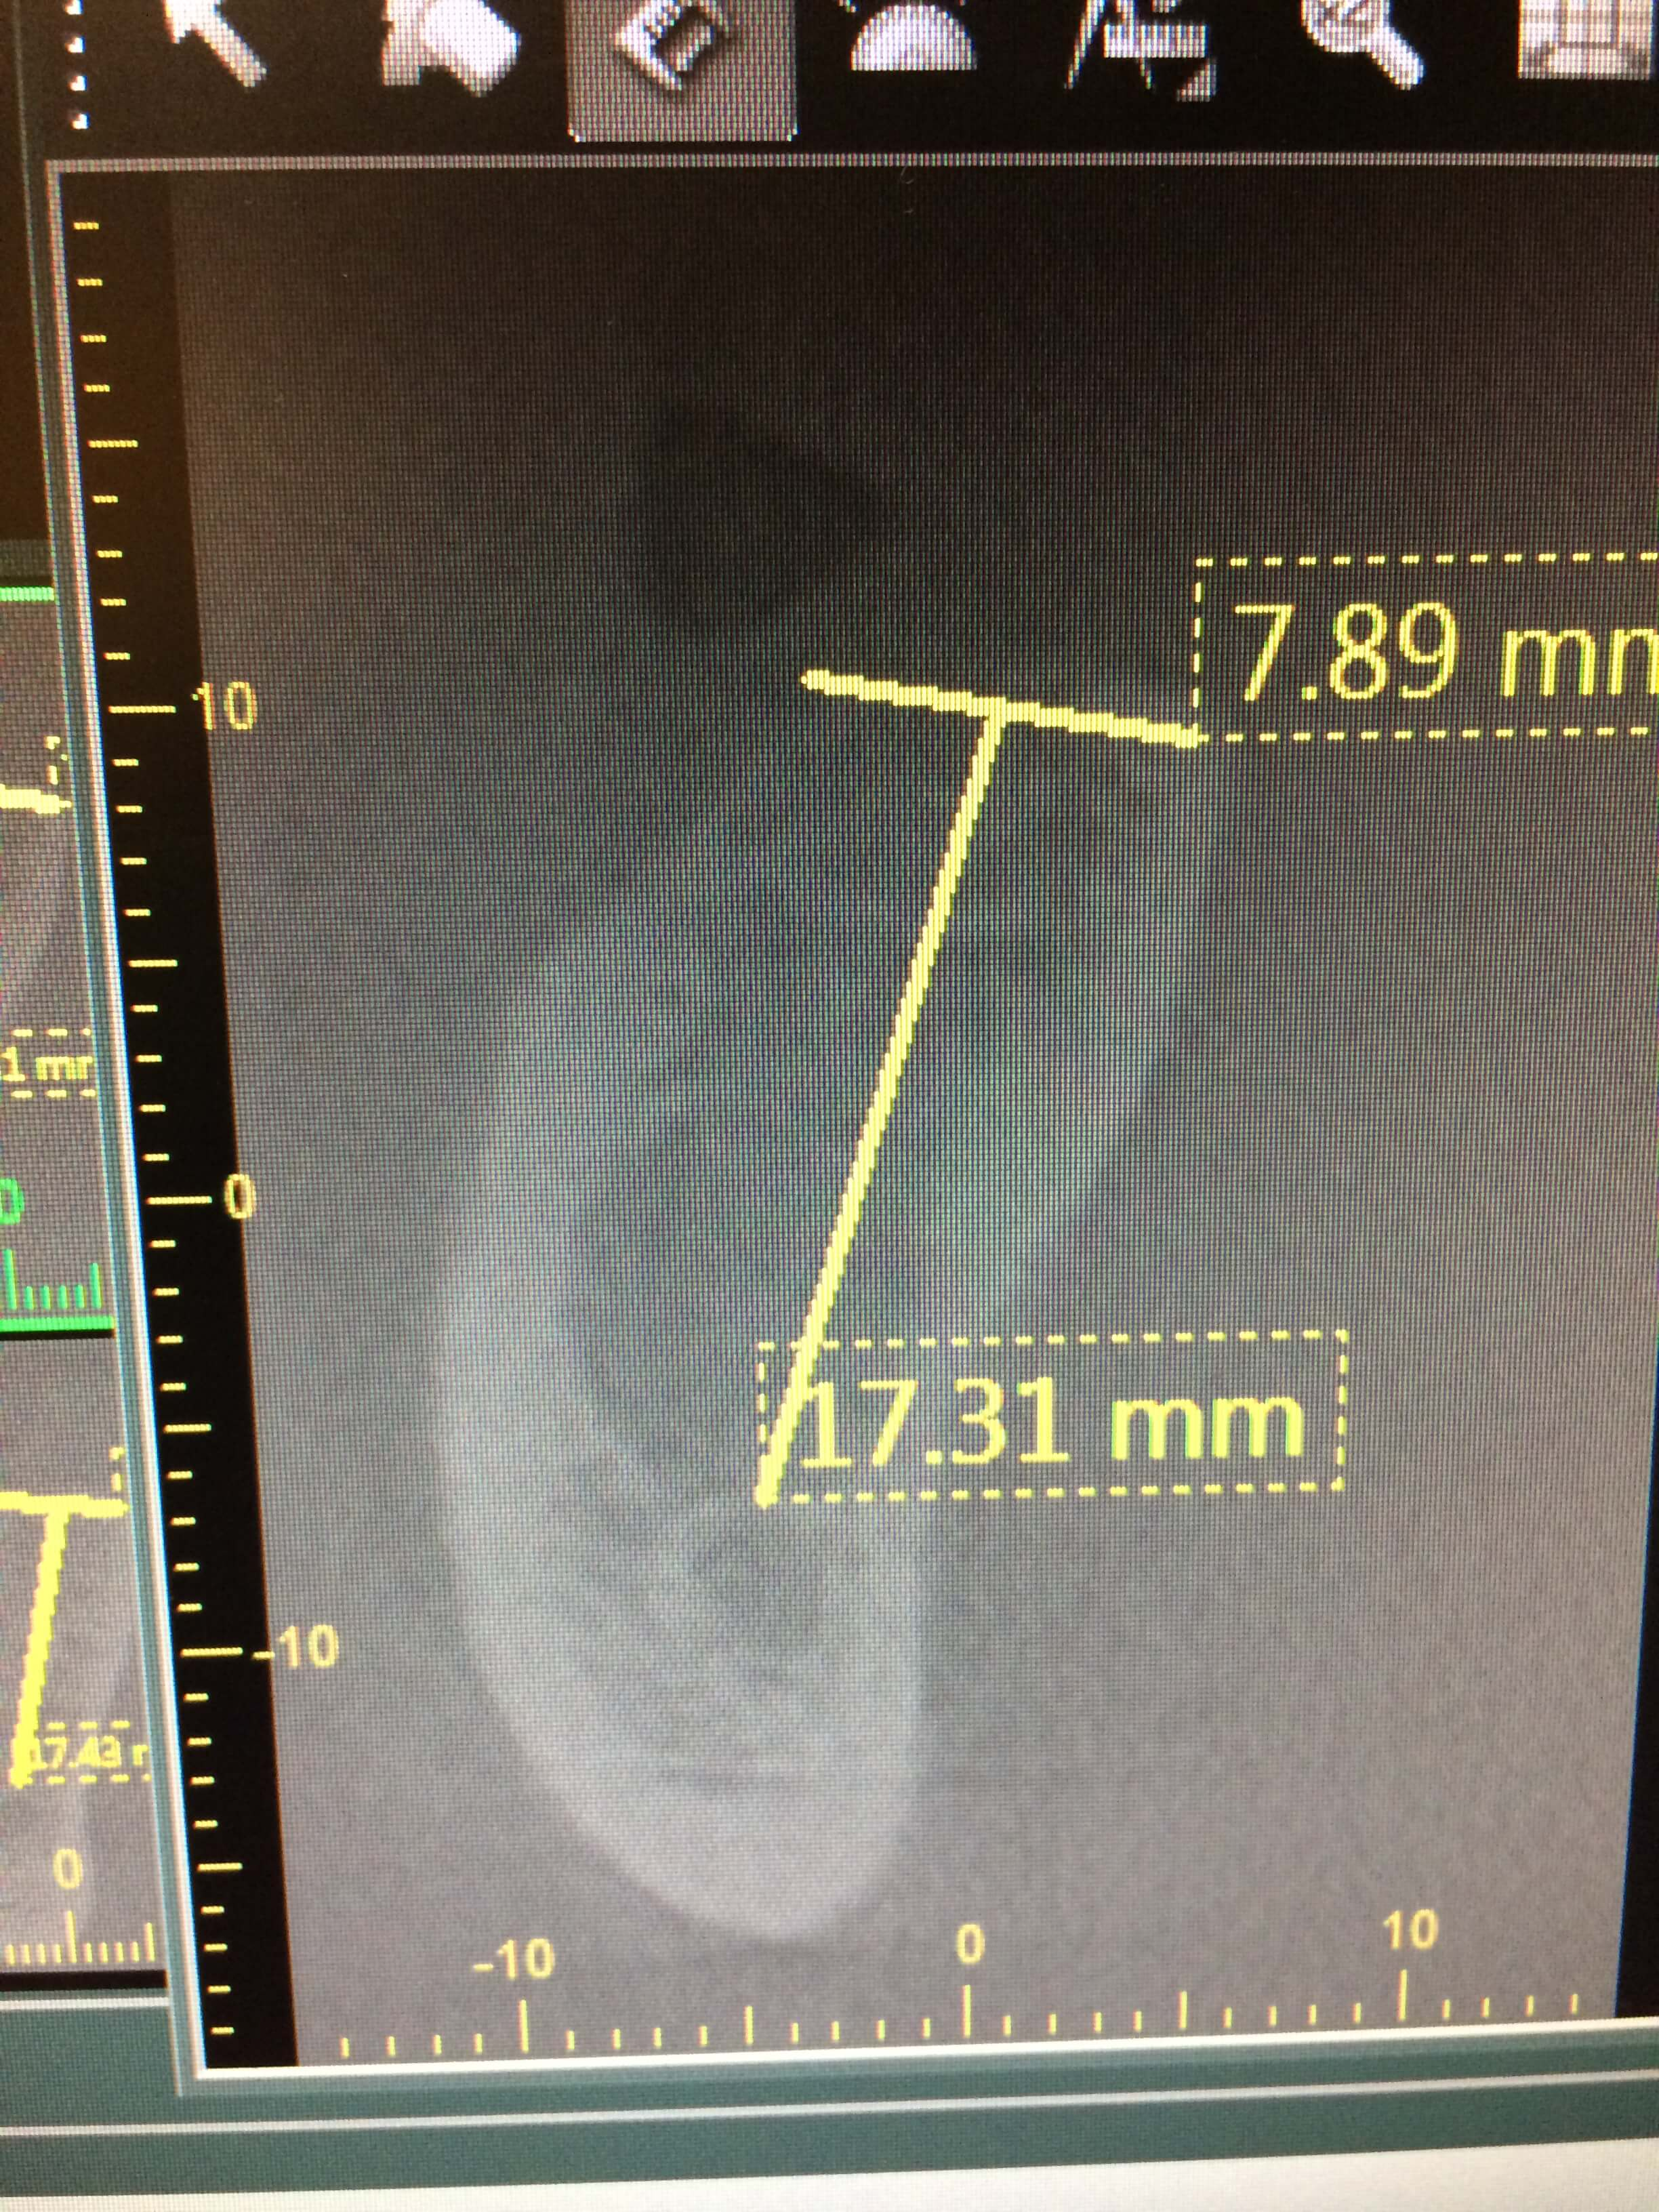 Tooth 46 large abscess and radiolucent lesion: recommendations?